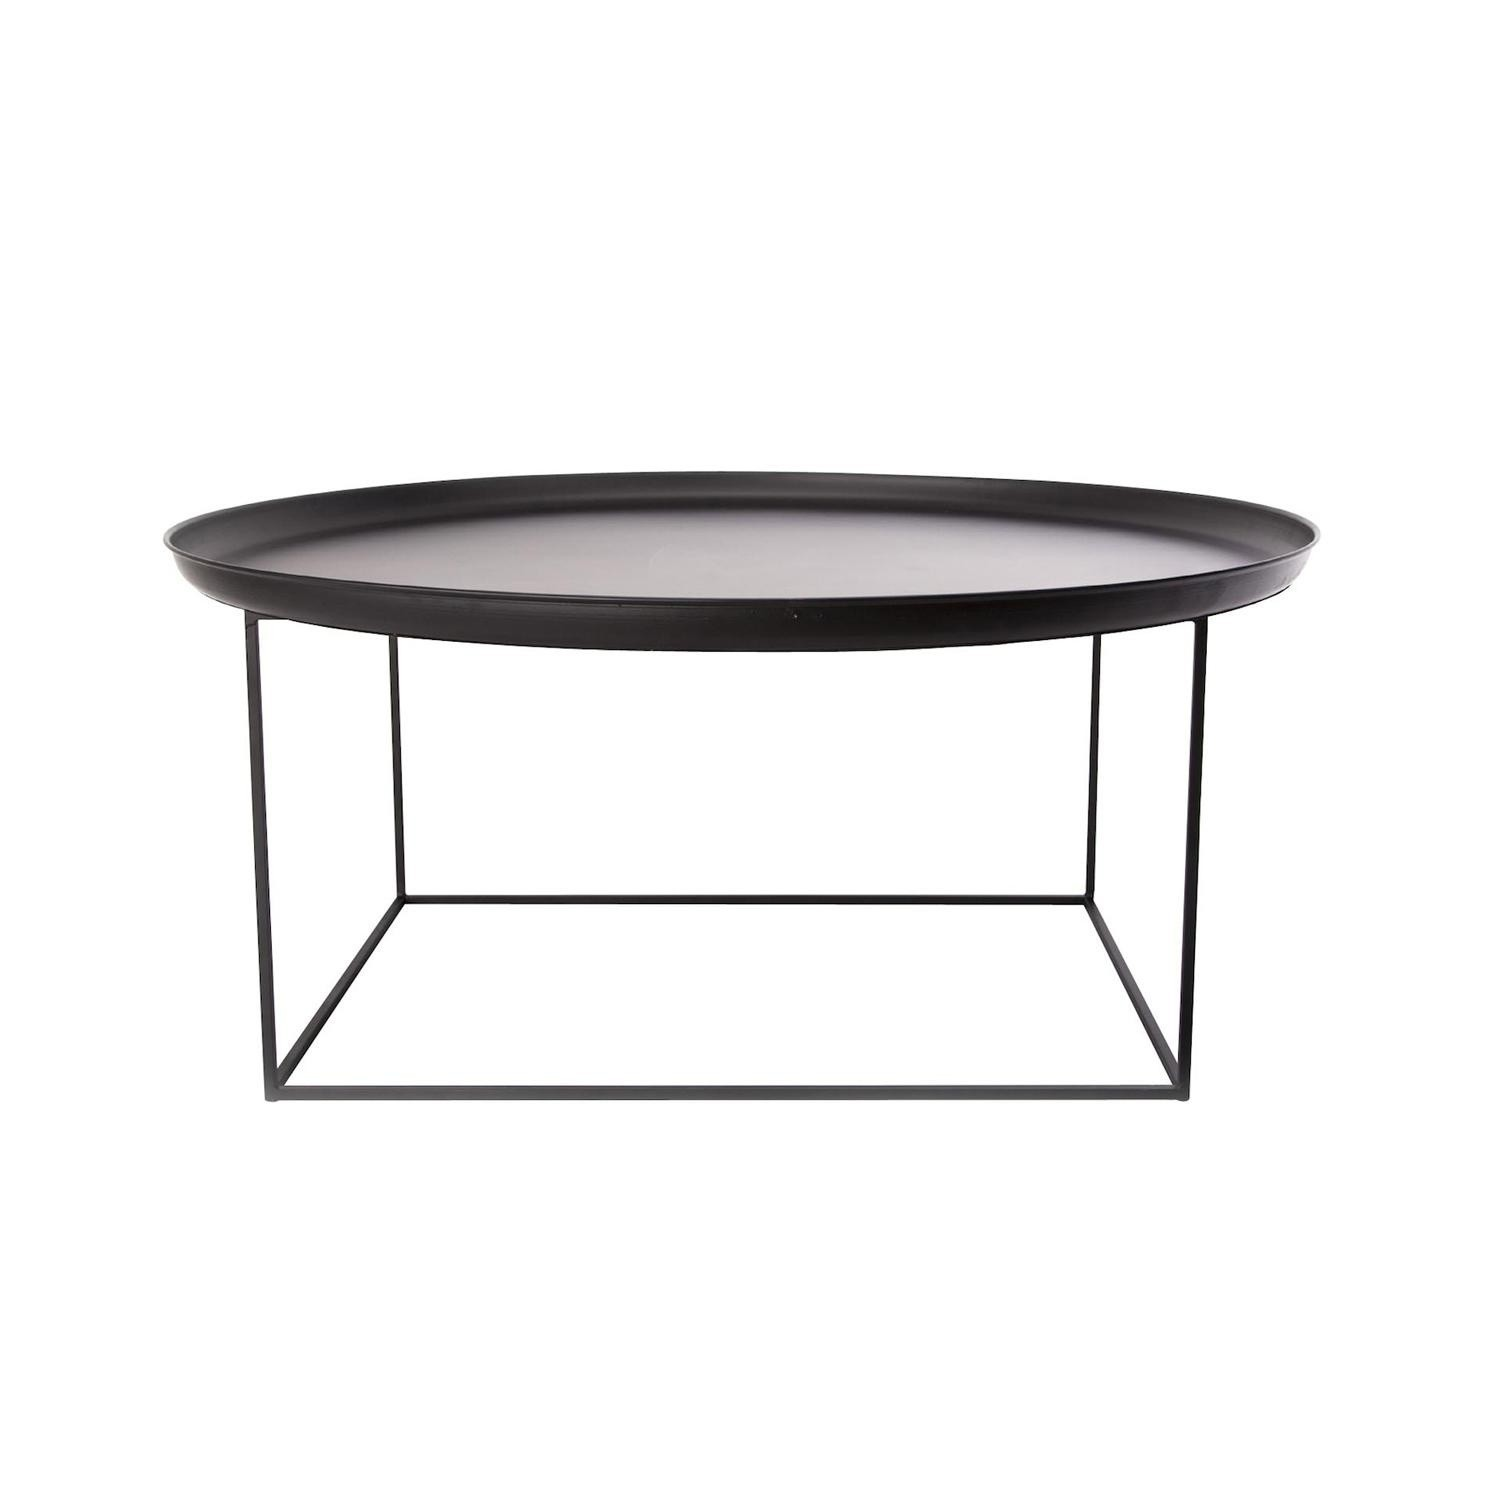 Norr 11 Duke Large Side Table Ø 90cm Ambientedirect